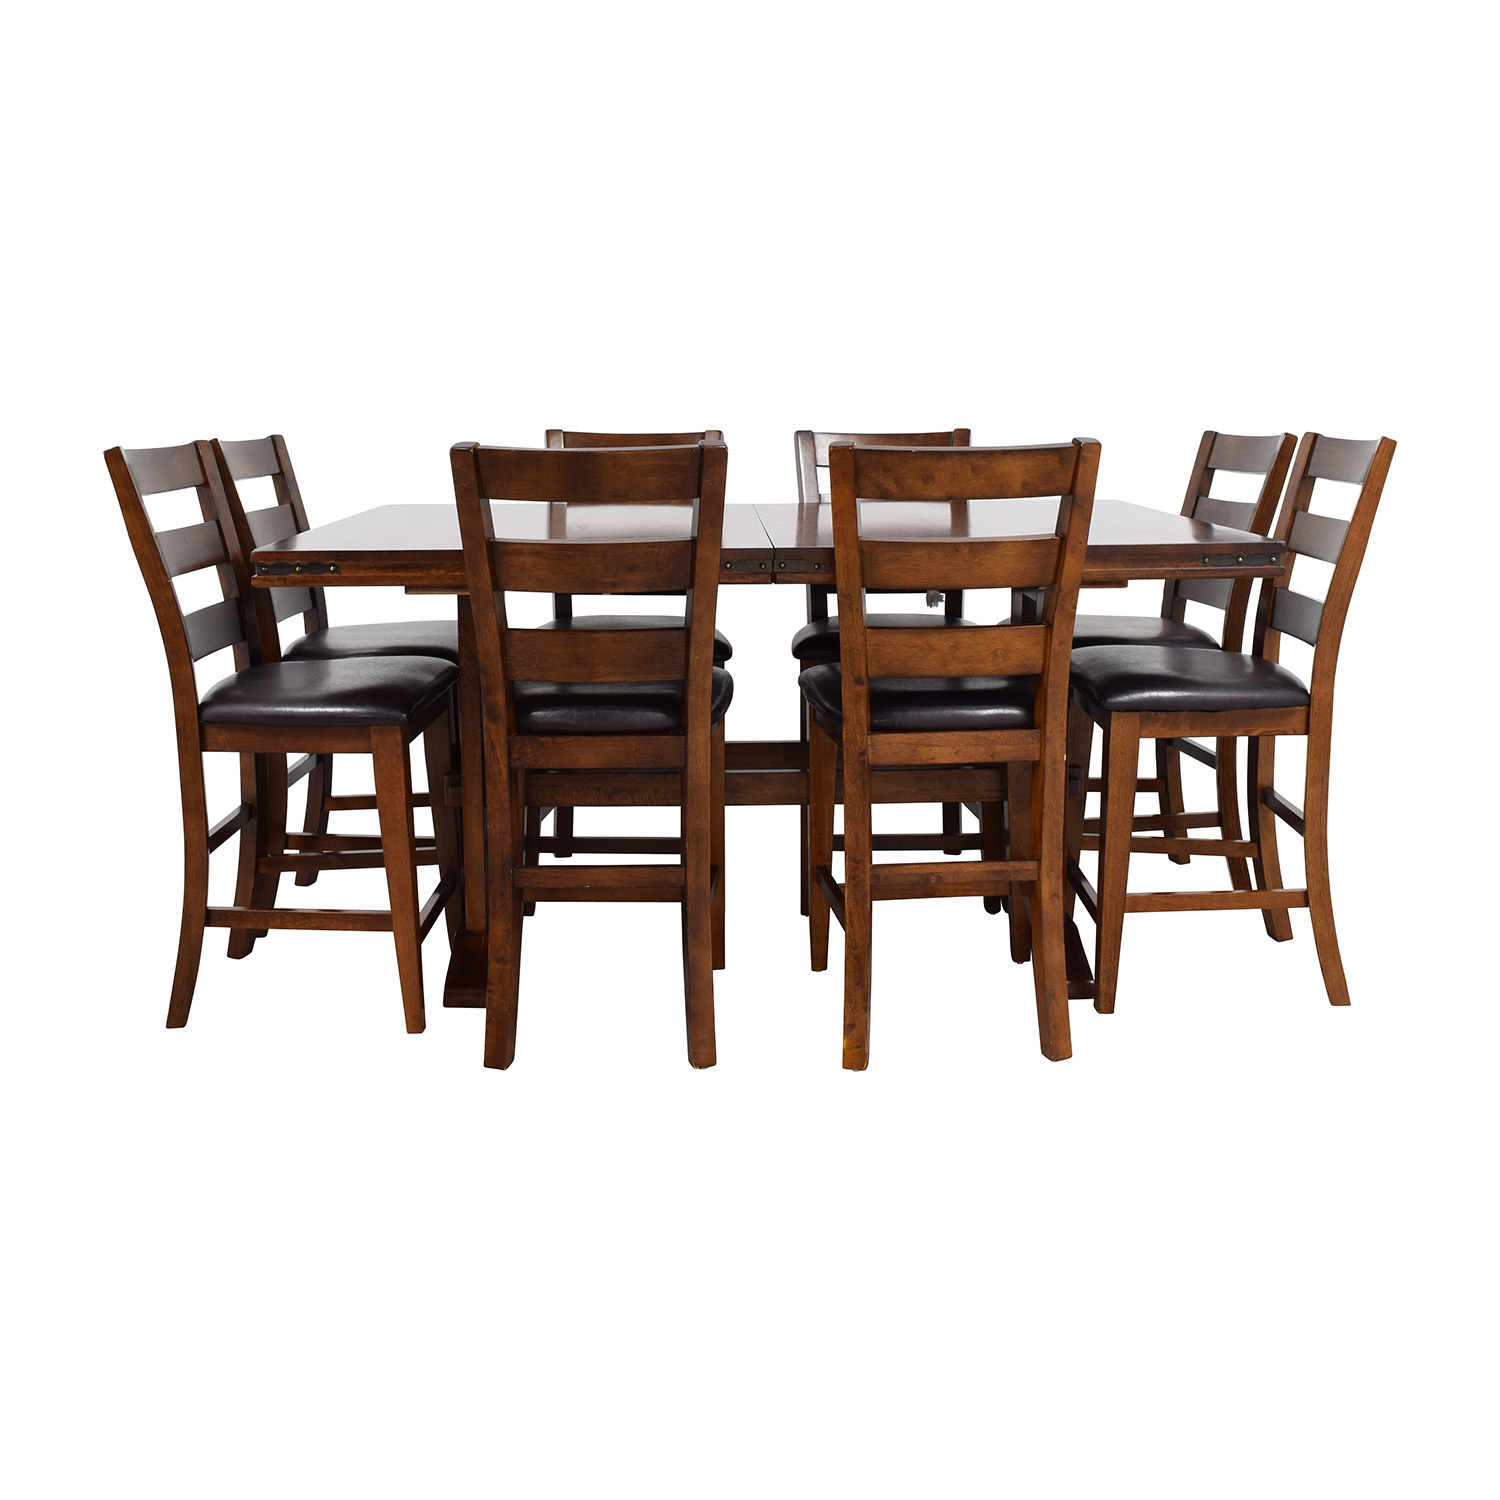 buy Bobs Furniture Enormous Counter Pub Table Set Bobs Furniture Tables